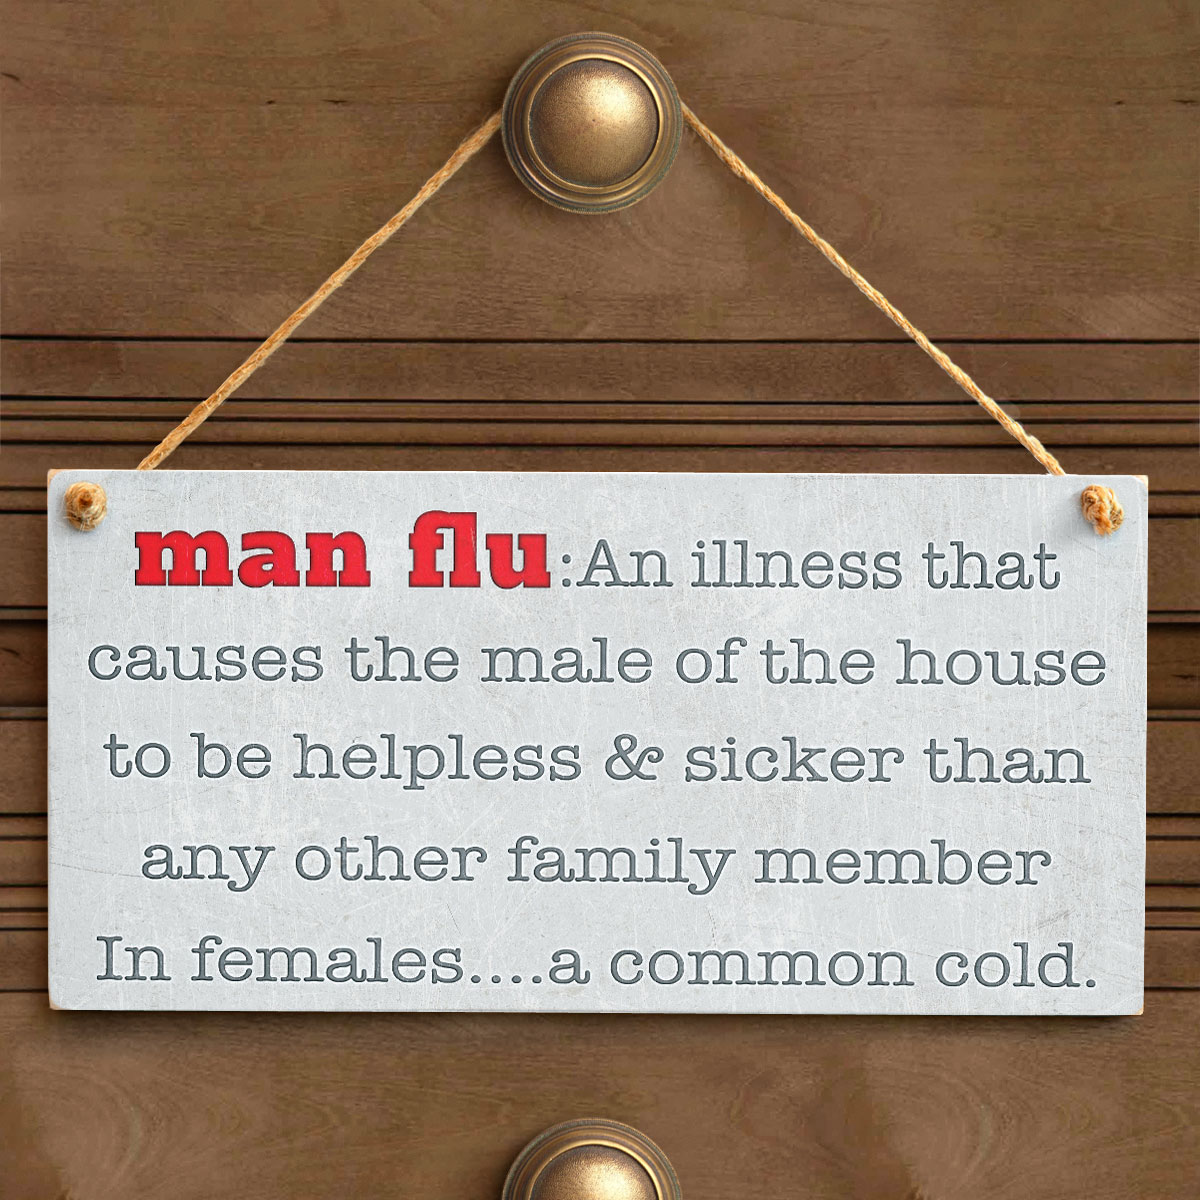 man flu sign related keywords suggestions man flu sign long tail rh keywordbasket com Cold Flu Prevention Tips Brochure Cold Flu Prevention Tips Brochure